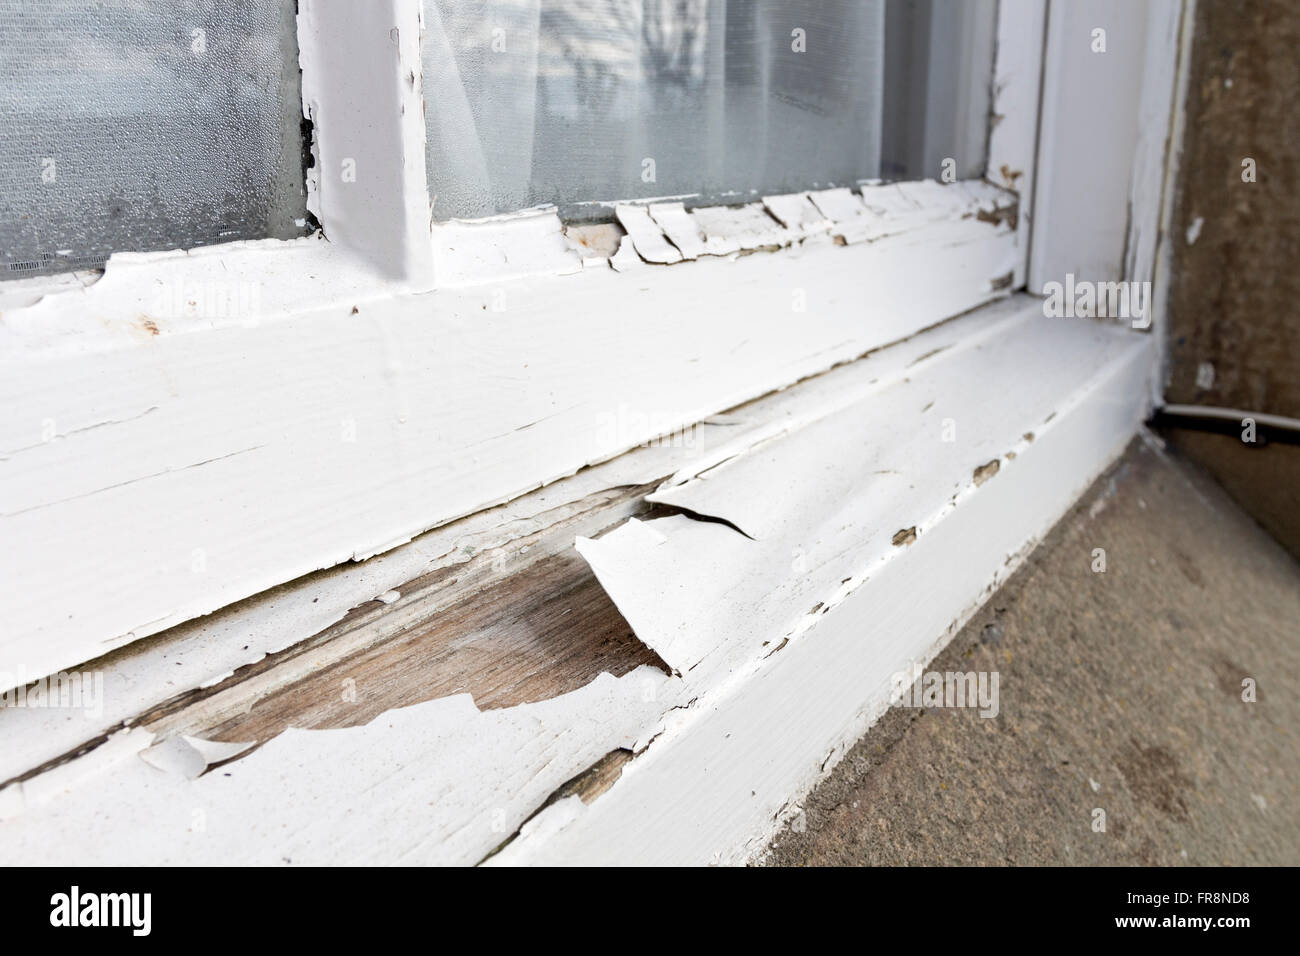 Missing and peeling paint on a property where the landlord has failed to maintain it UK. - Stock Image